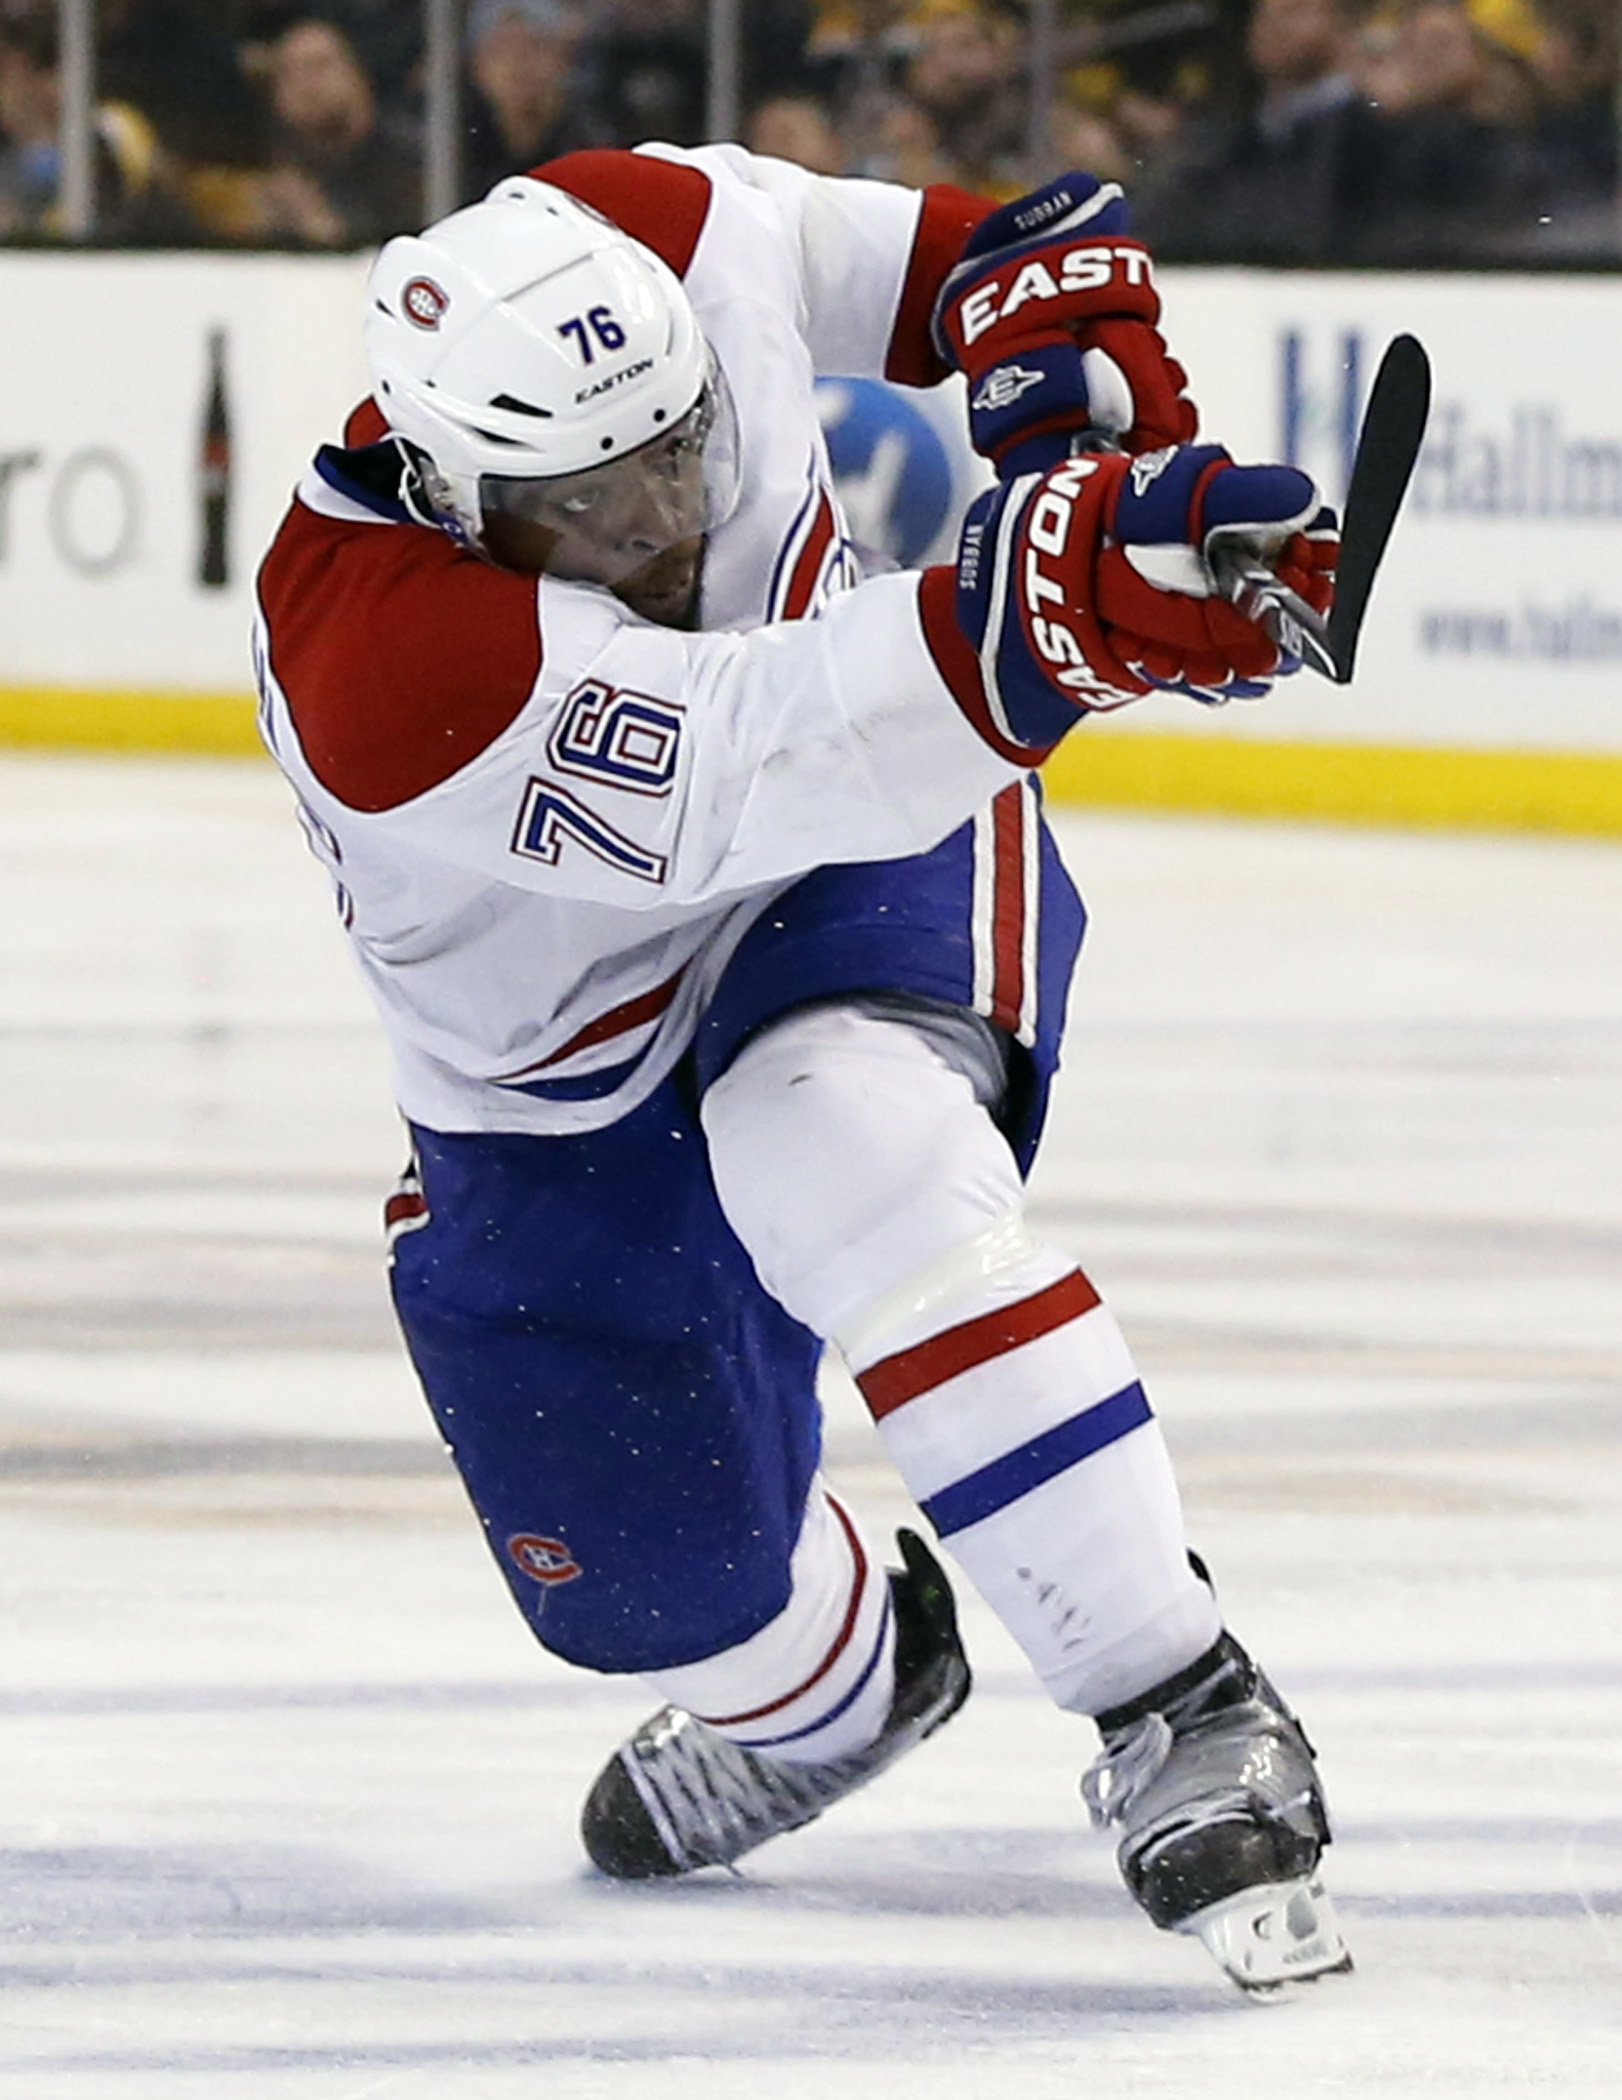 Montreal Canadiens' P.K. Subban follows through on his game-winning goal in the second overtime period against the Boston Bruins in Game 1 of an NHL hockey second-round playoff series in Boston, Thursday, May 1, 2014. The Canadiens won 4-3